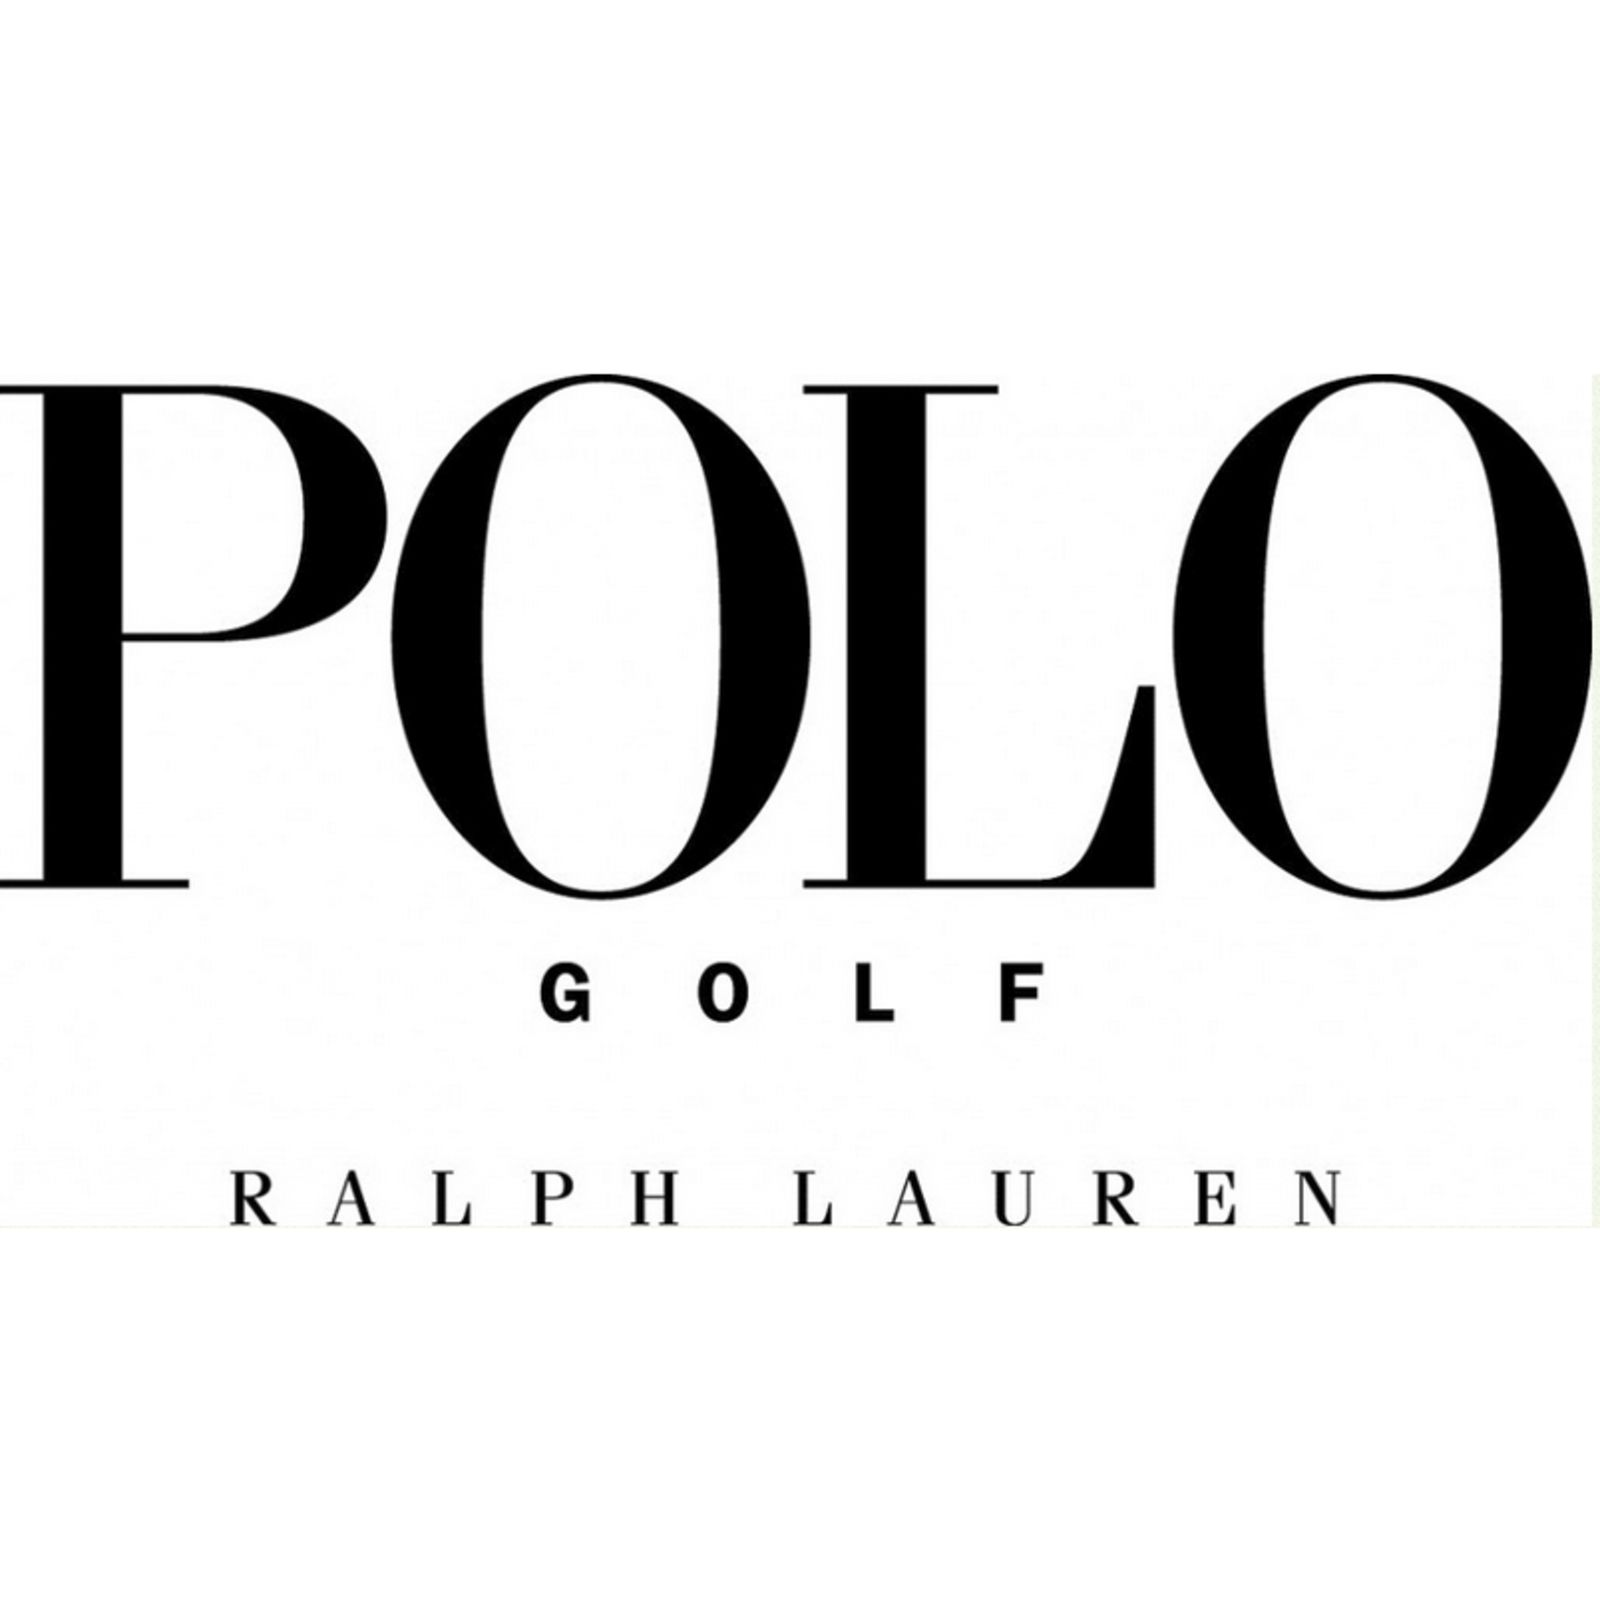 POLO RALPH LAUREN GOLF (Bild 1)